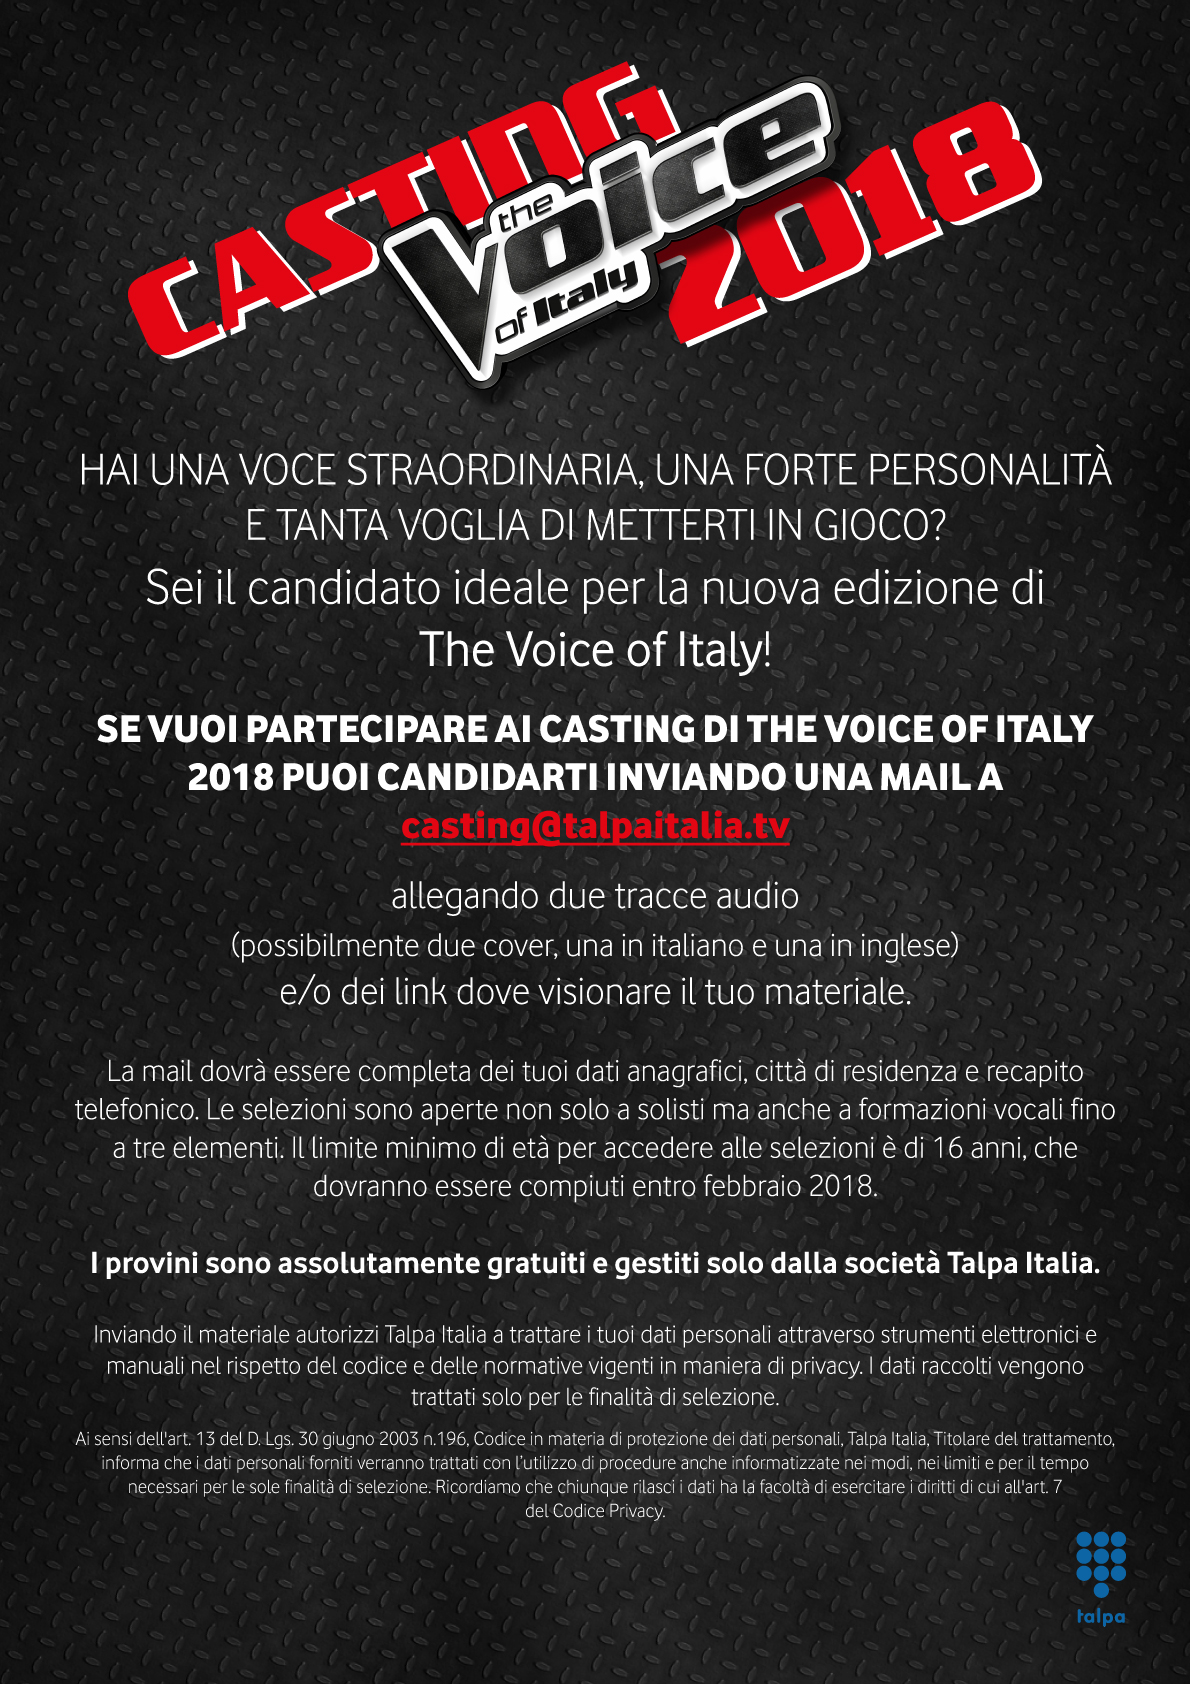 CASTING THE VOICE OF ITALY